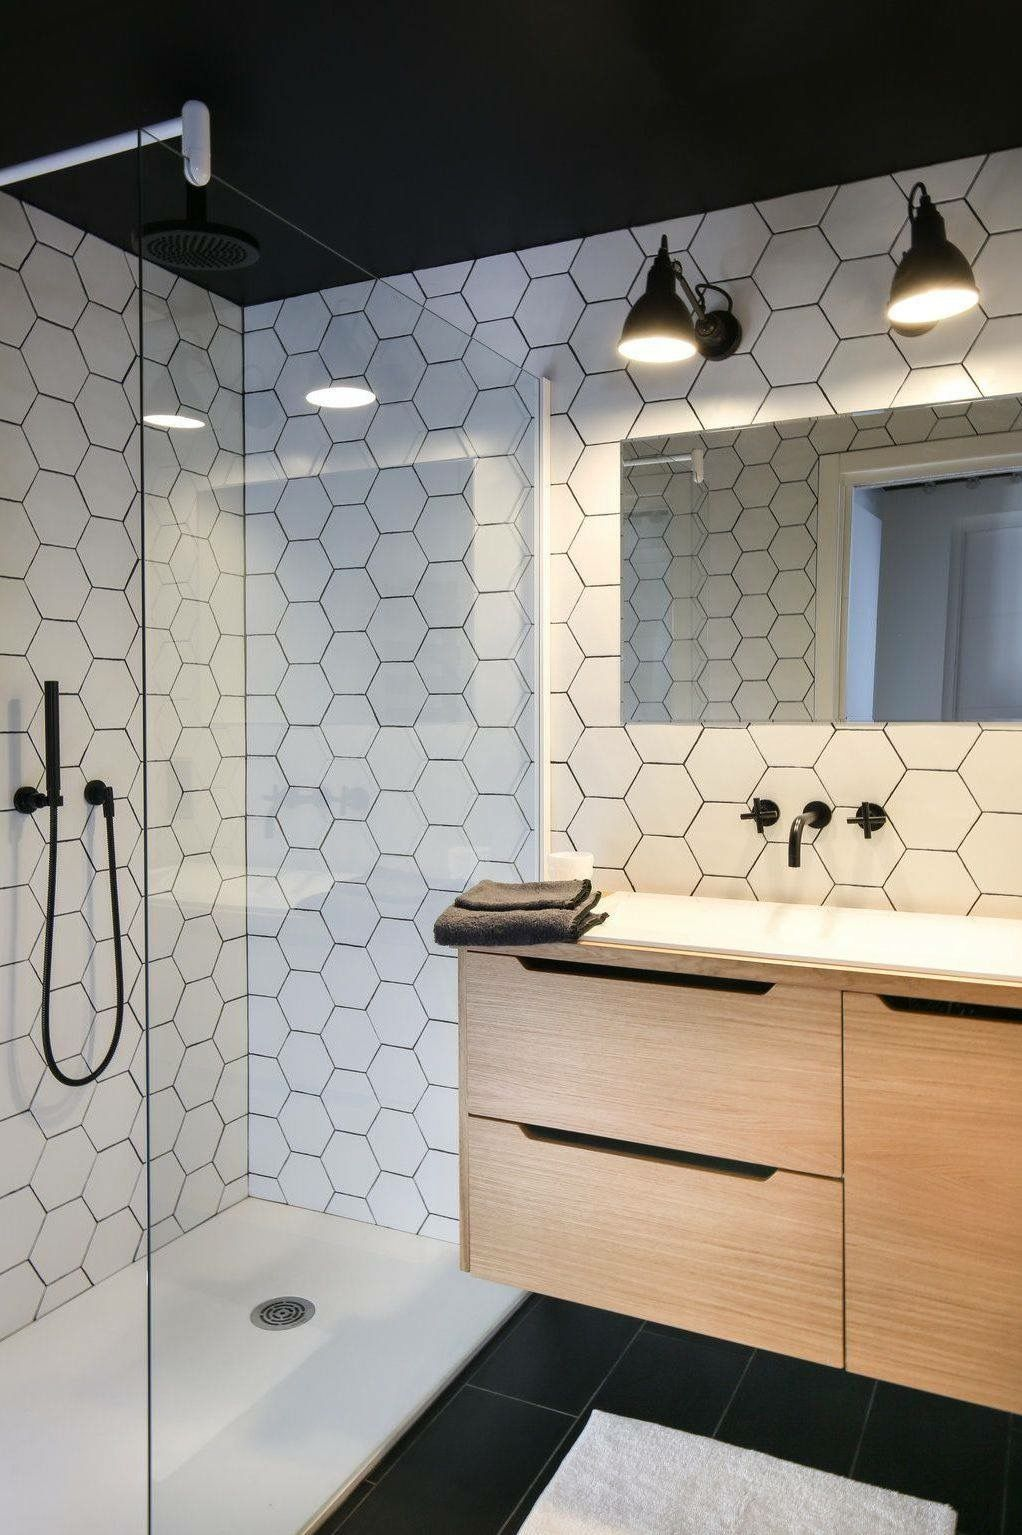 Love These White Hexagon Tiles The Black Shower Faucet Bathroom Bathroomideas Bathroomdesig Bathroom Tile Designs White Hexagon Tiles Amazing Bathrooms